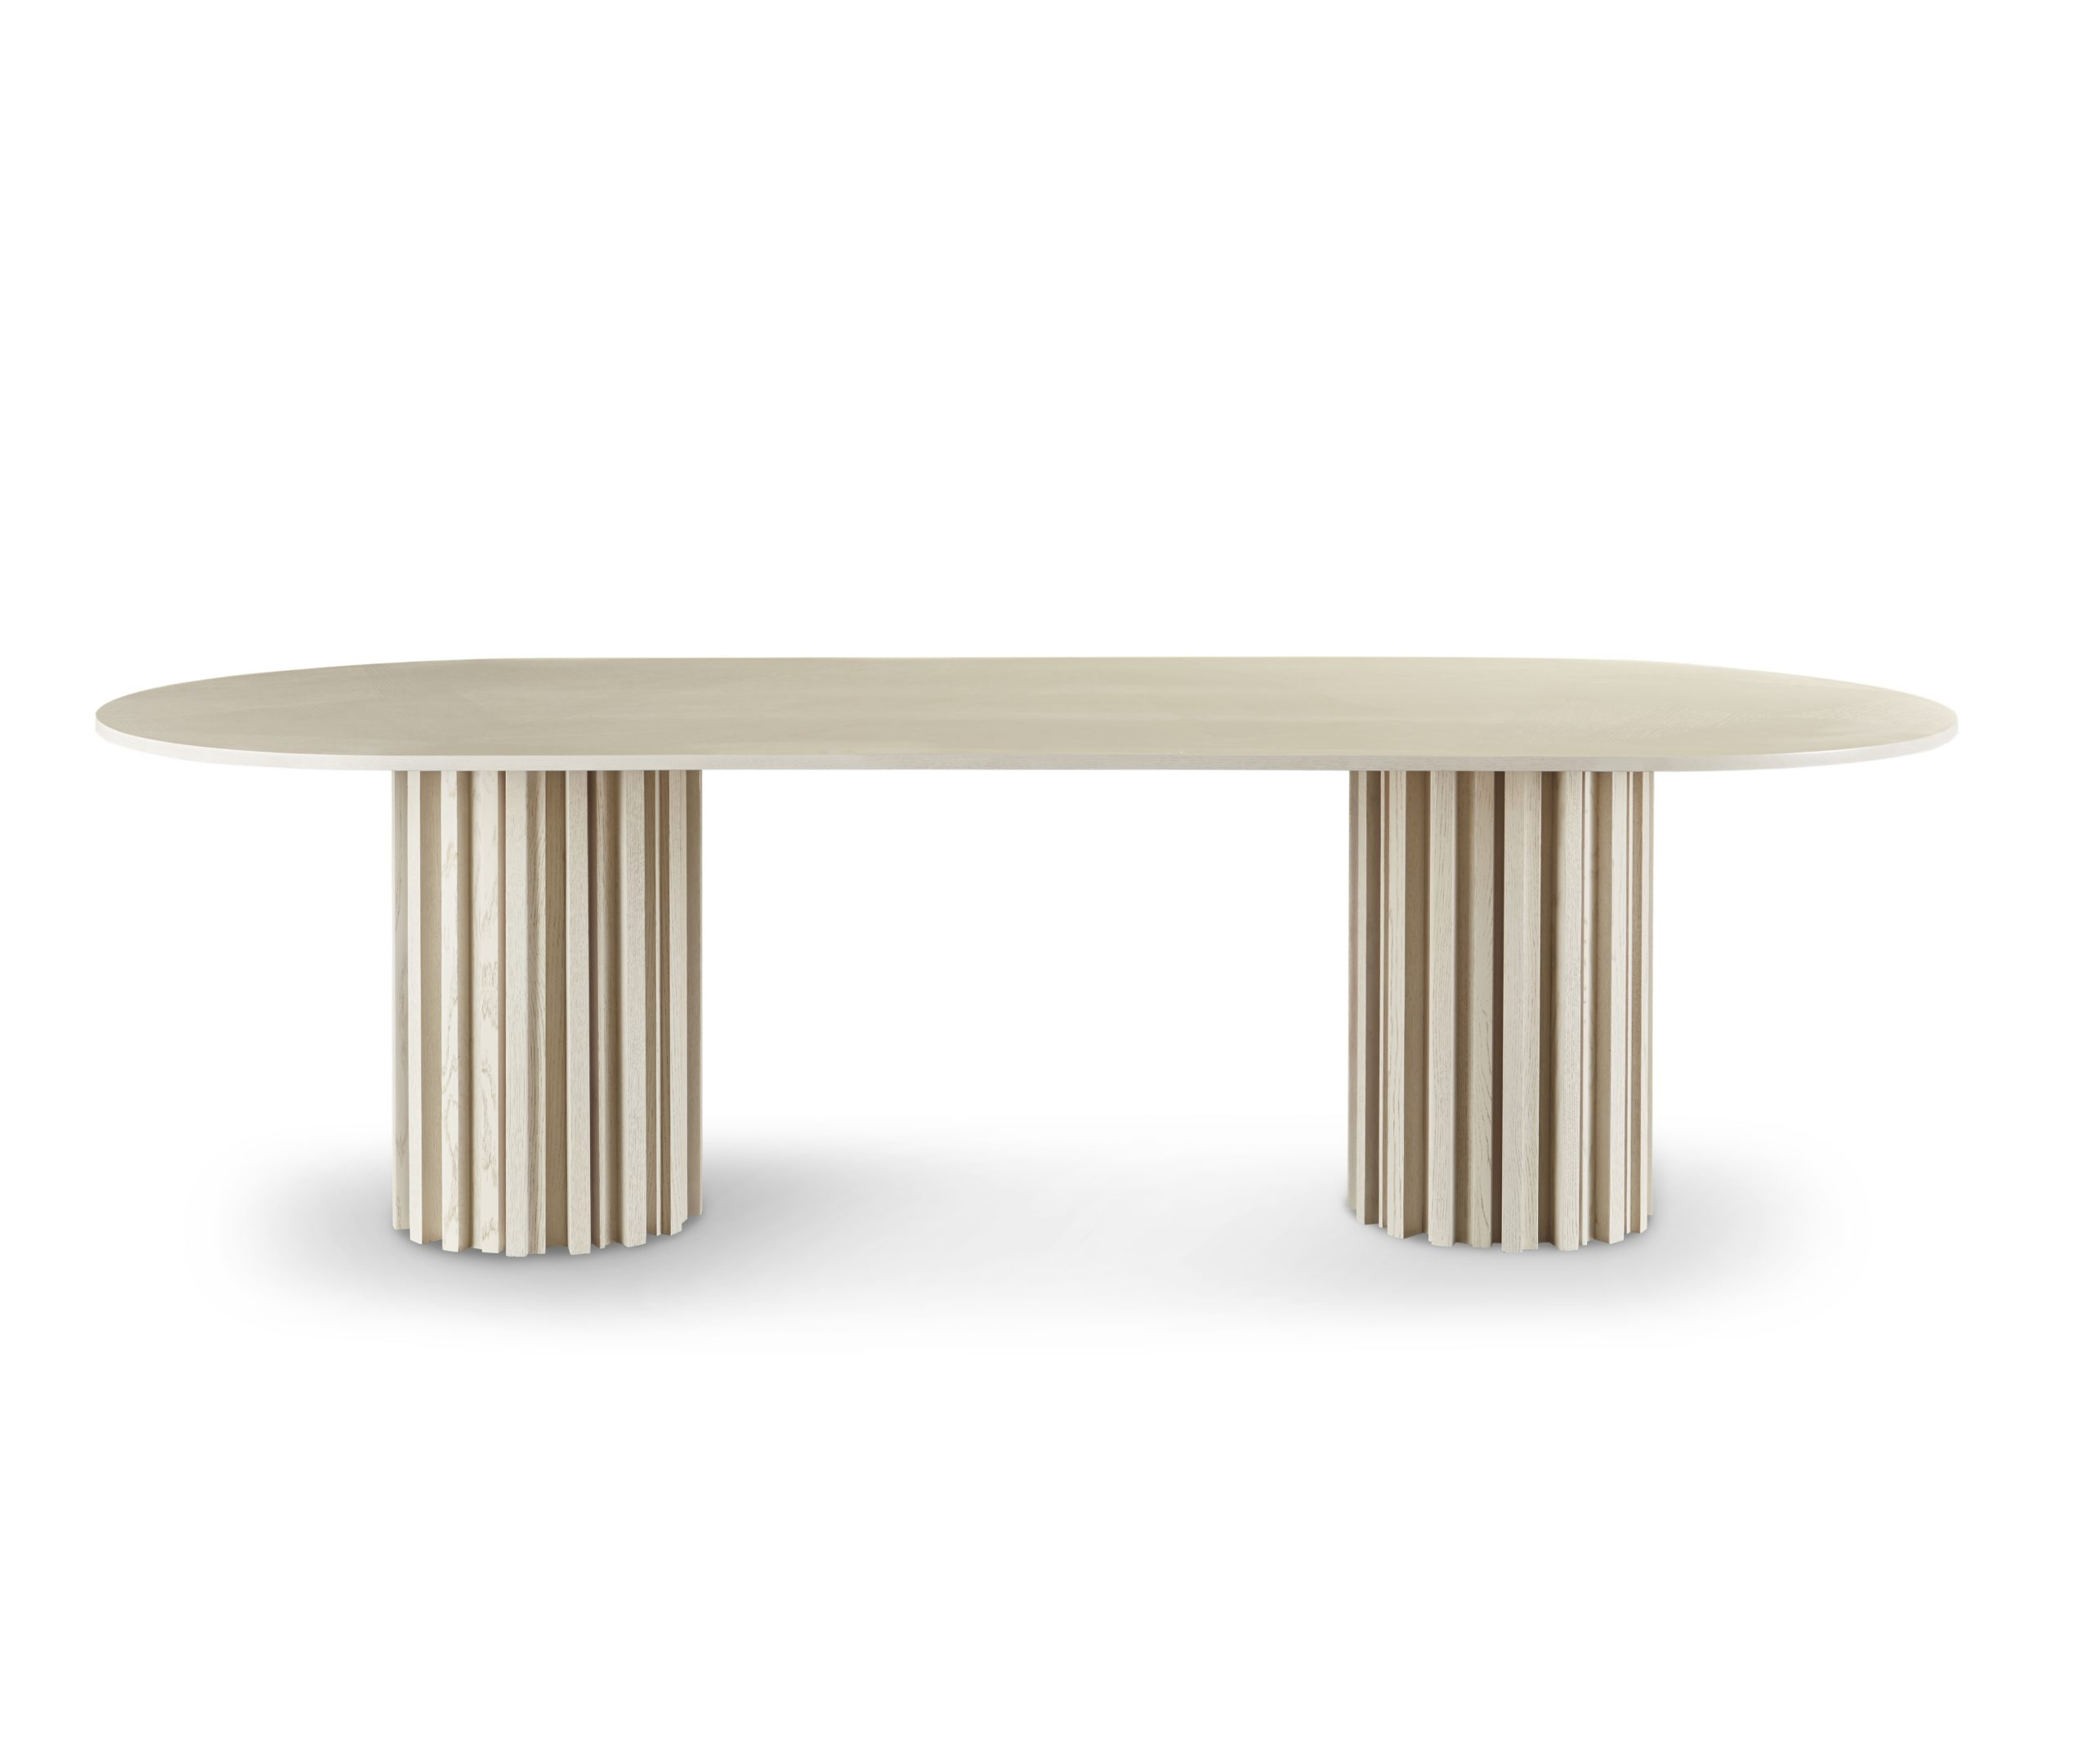 Baker_products_WNWN_huxley_dining_table_BAA3036_OVAL_FRONT-scaled-6